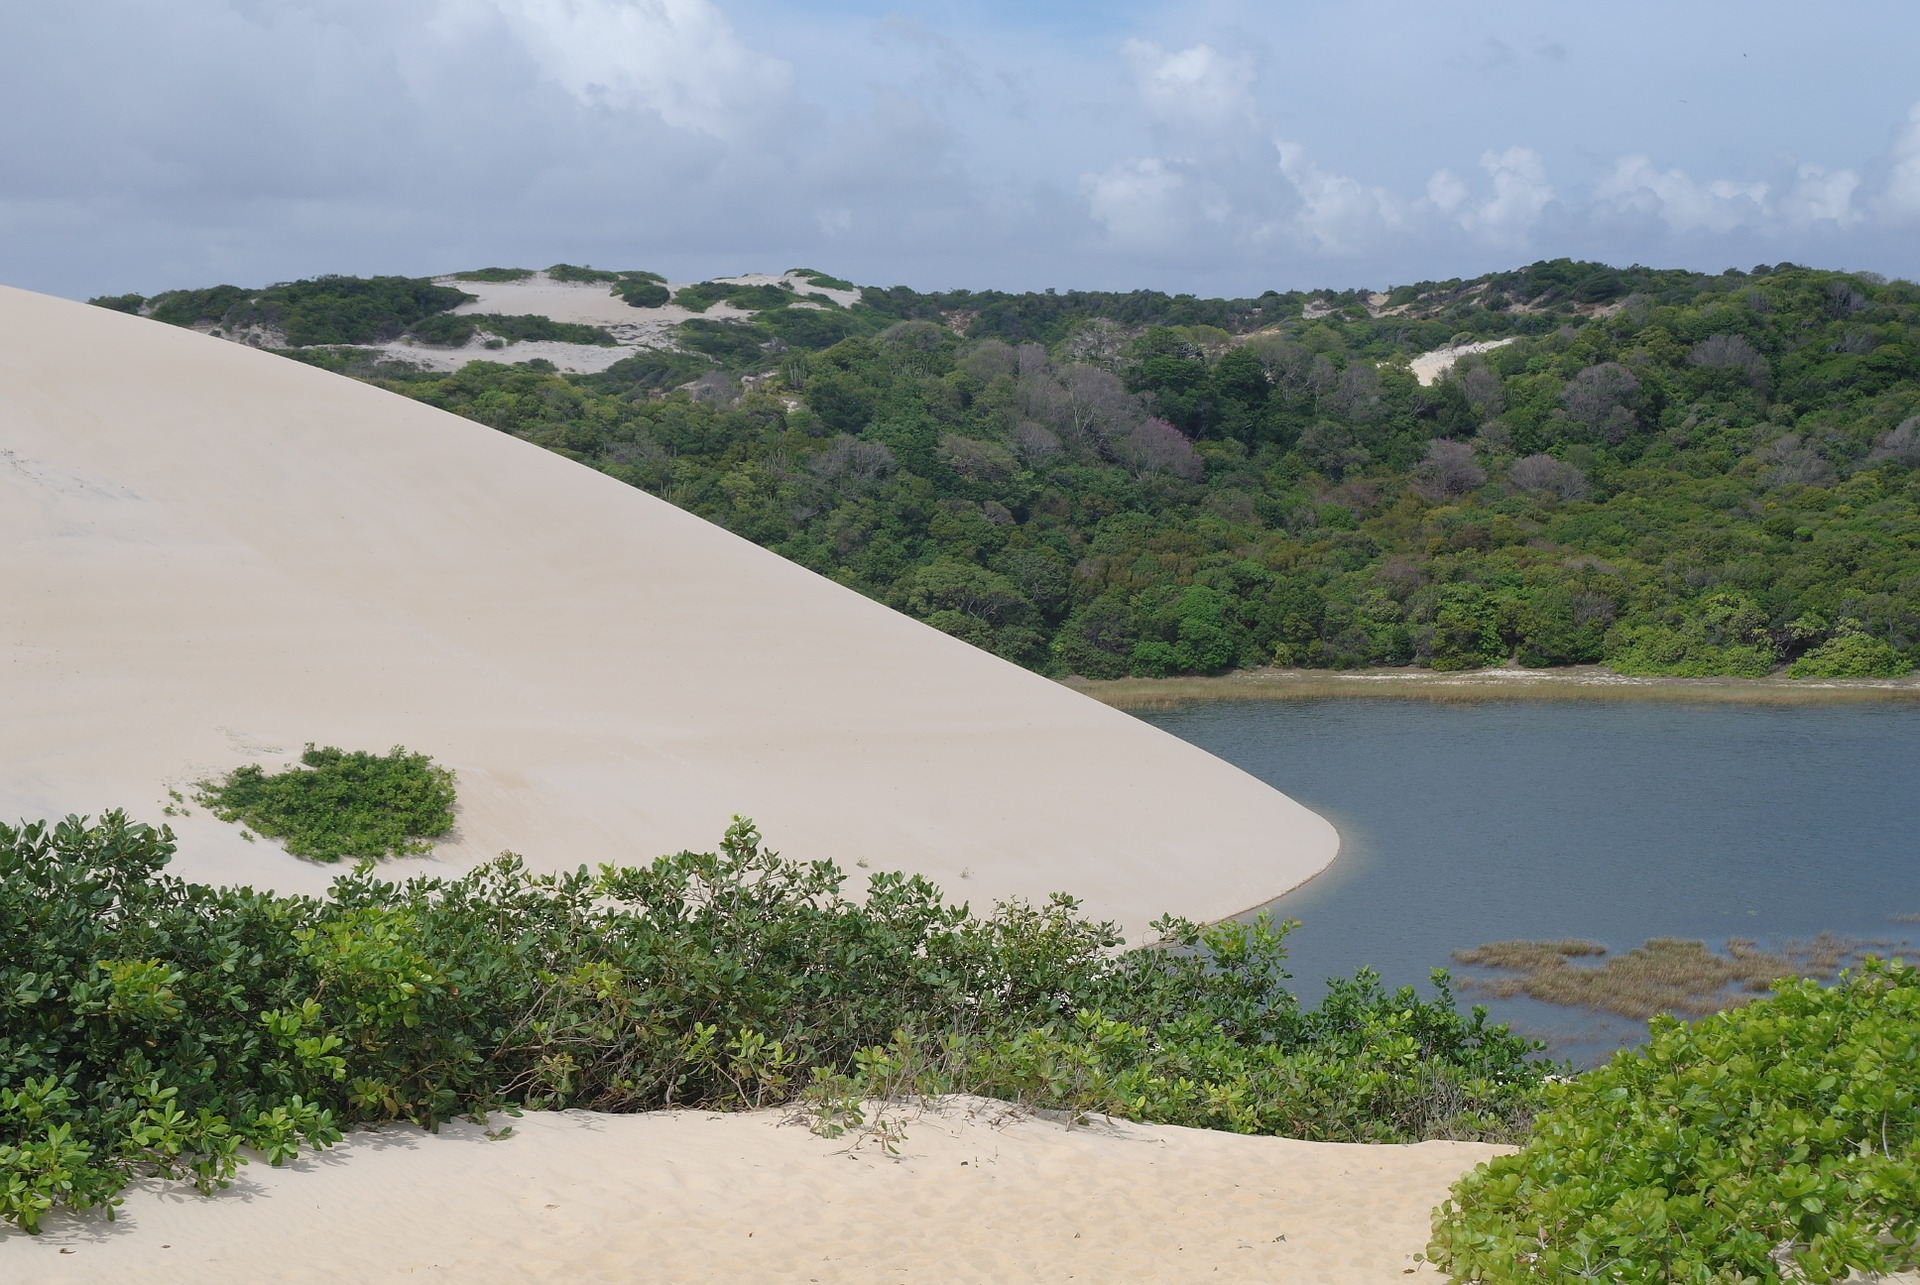 Nova Cruz - Rio Grande do Norte